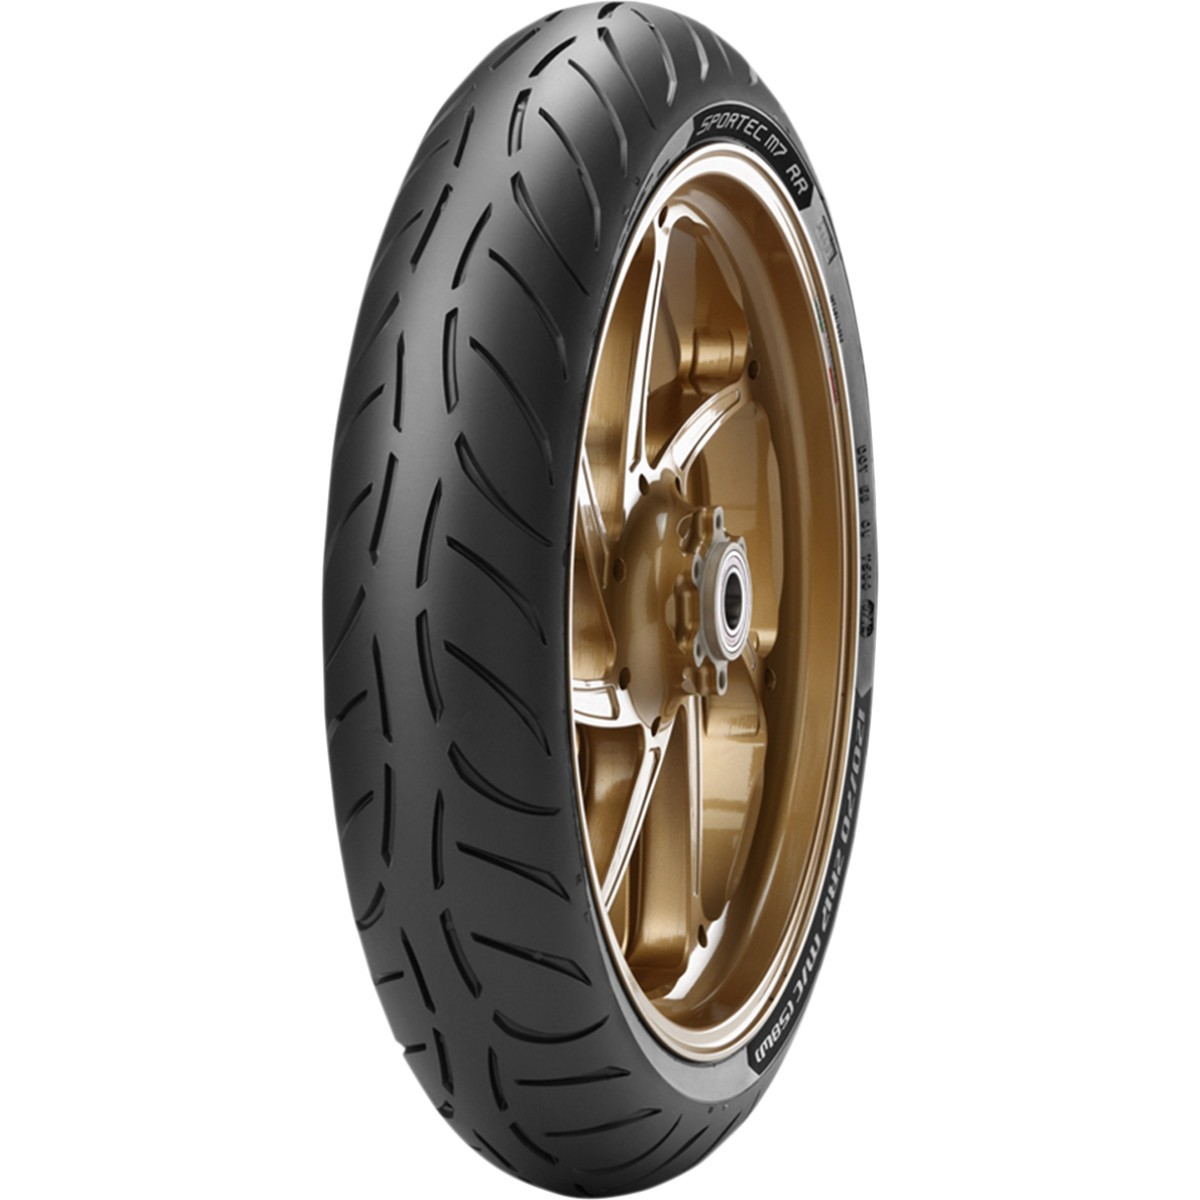 Metzeler M7 120/70 ZR17 58 W Front Two-Wheeler Tyre